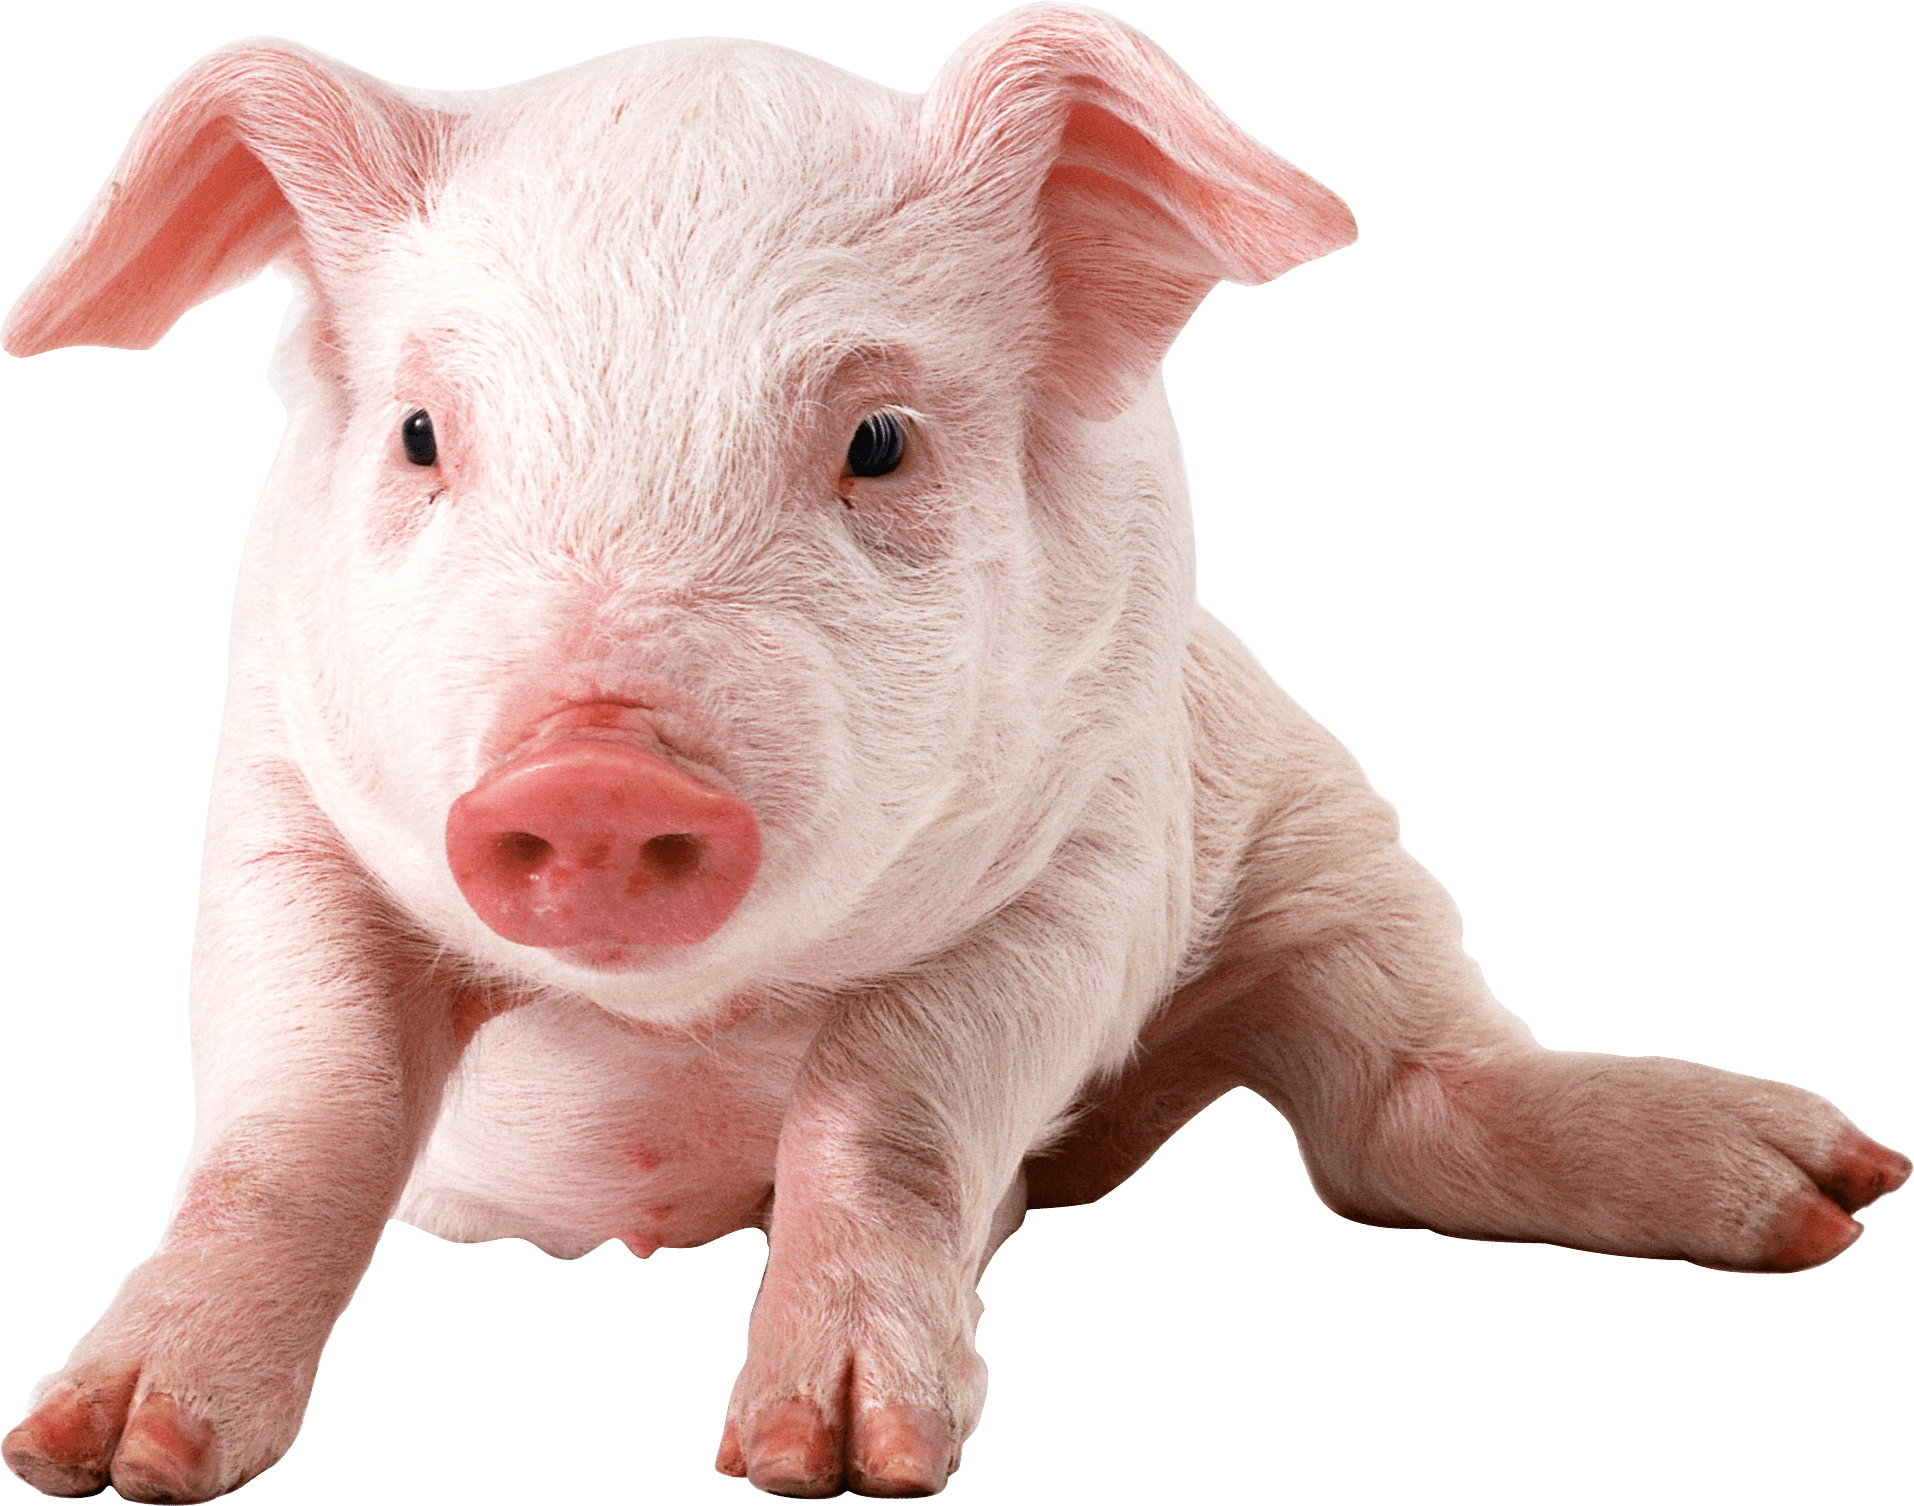 Pig PNG - 25889